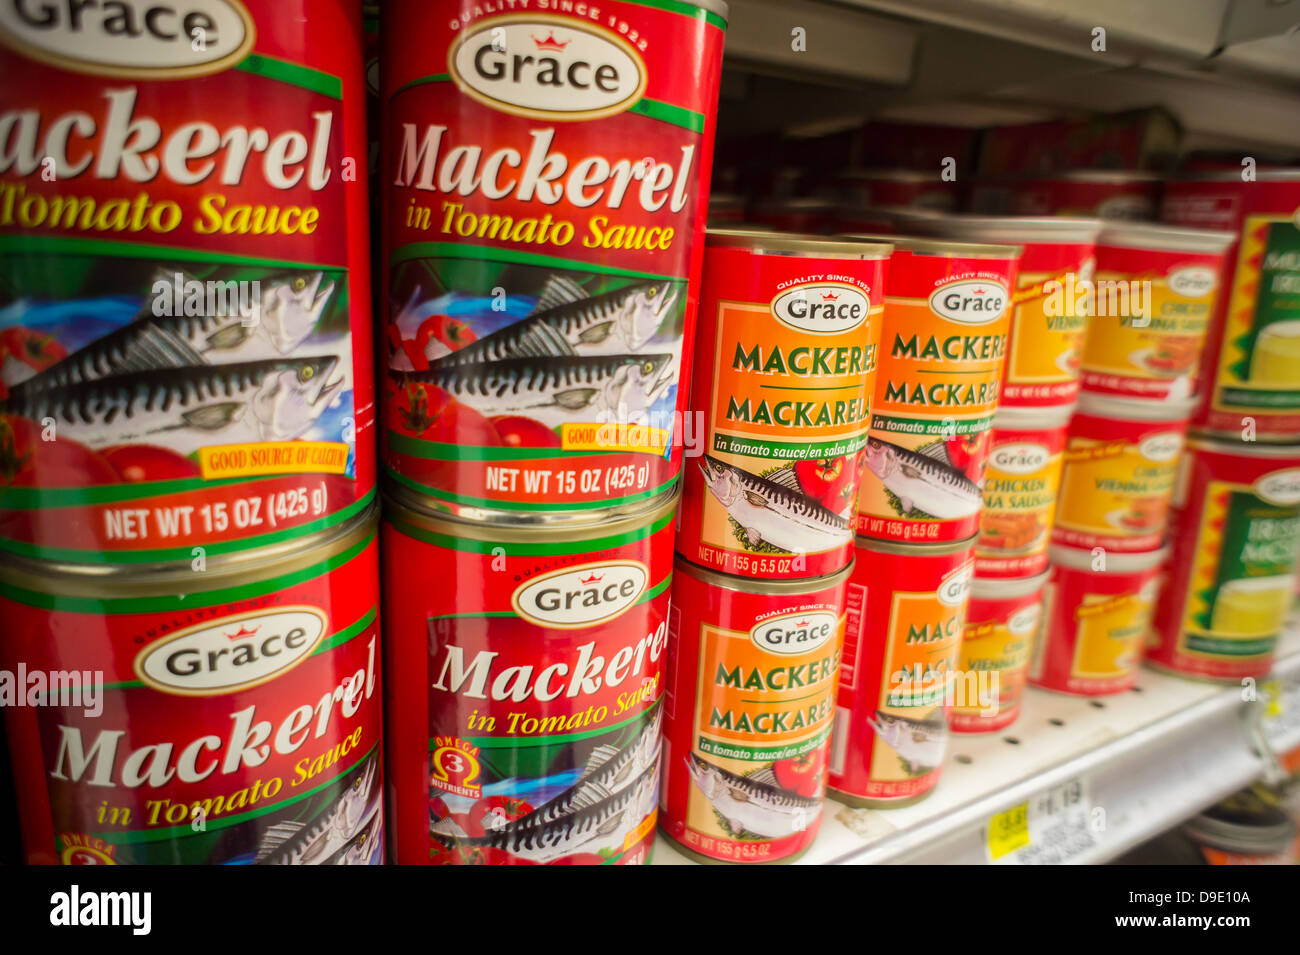 Cans of Grace brand mackerel in a supermarket in New York on Thursday, June 13, 2013. (© Richard B. Levine) - Stock Image